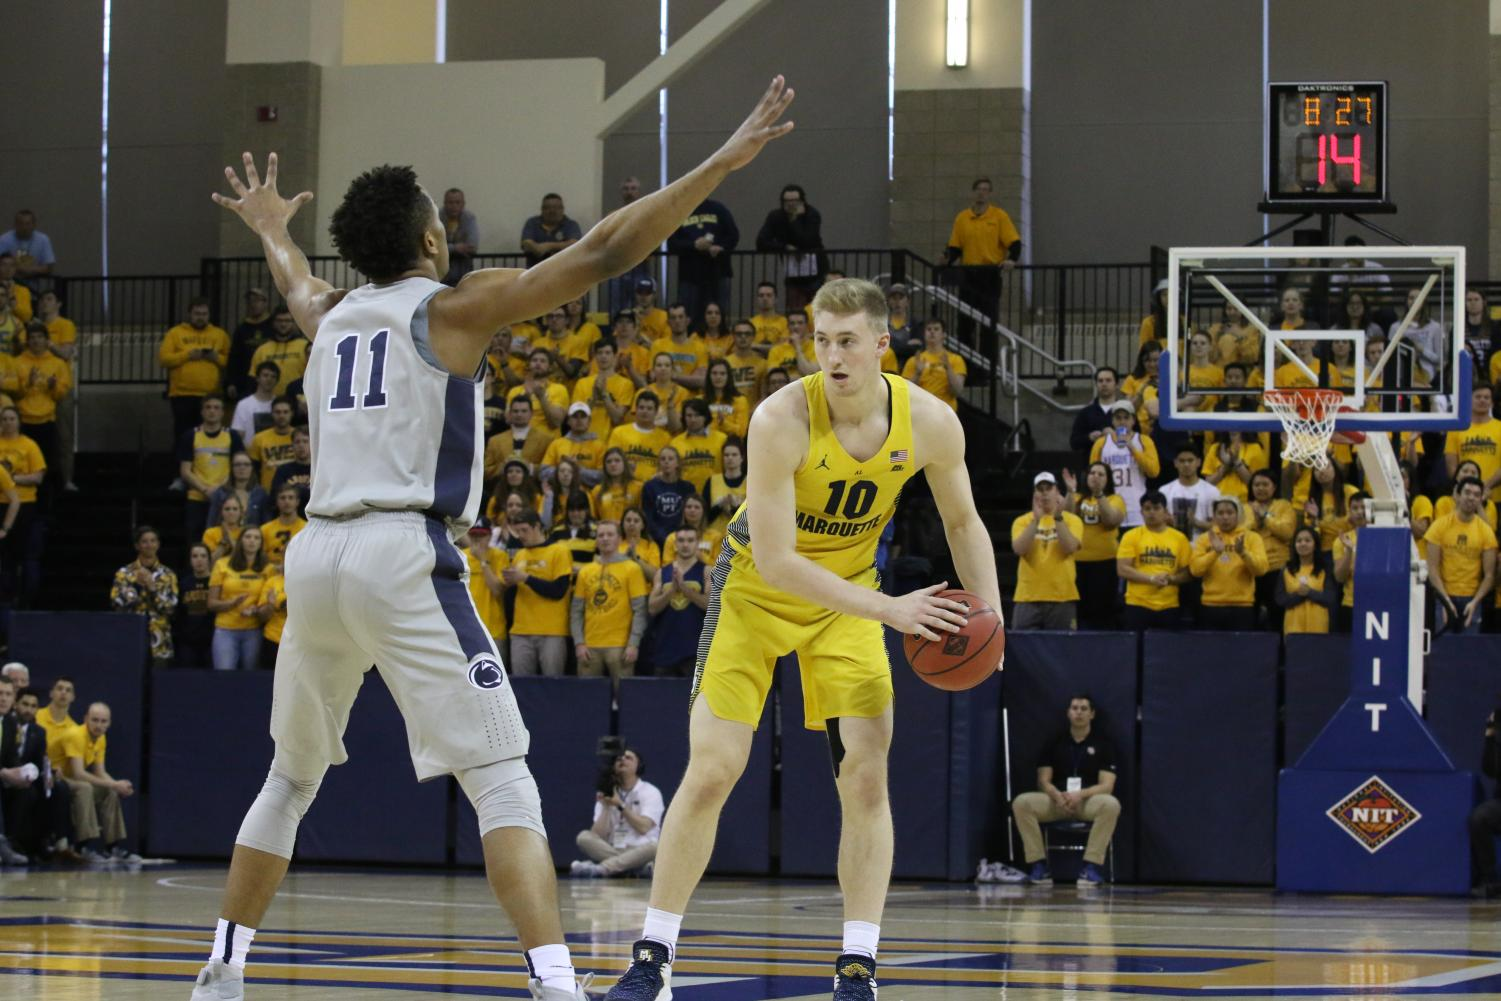 Sophomore forward Sam Hauser scored 13 points in Marquette's NIT loss to Penn State on Tuesday night.